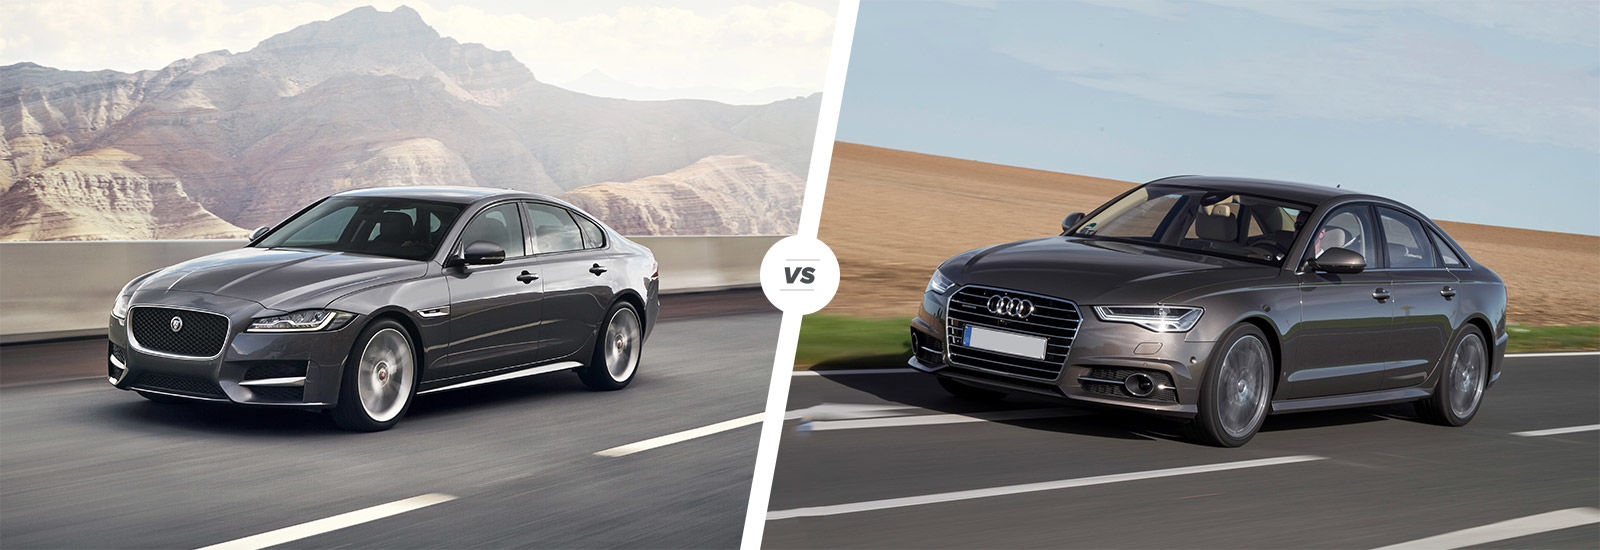 Which Is Better Car Bmw Audi Or Mercedes